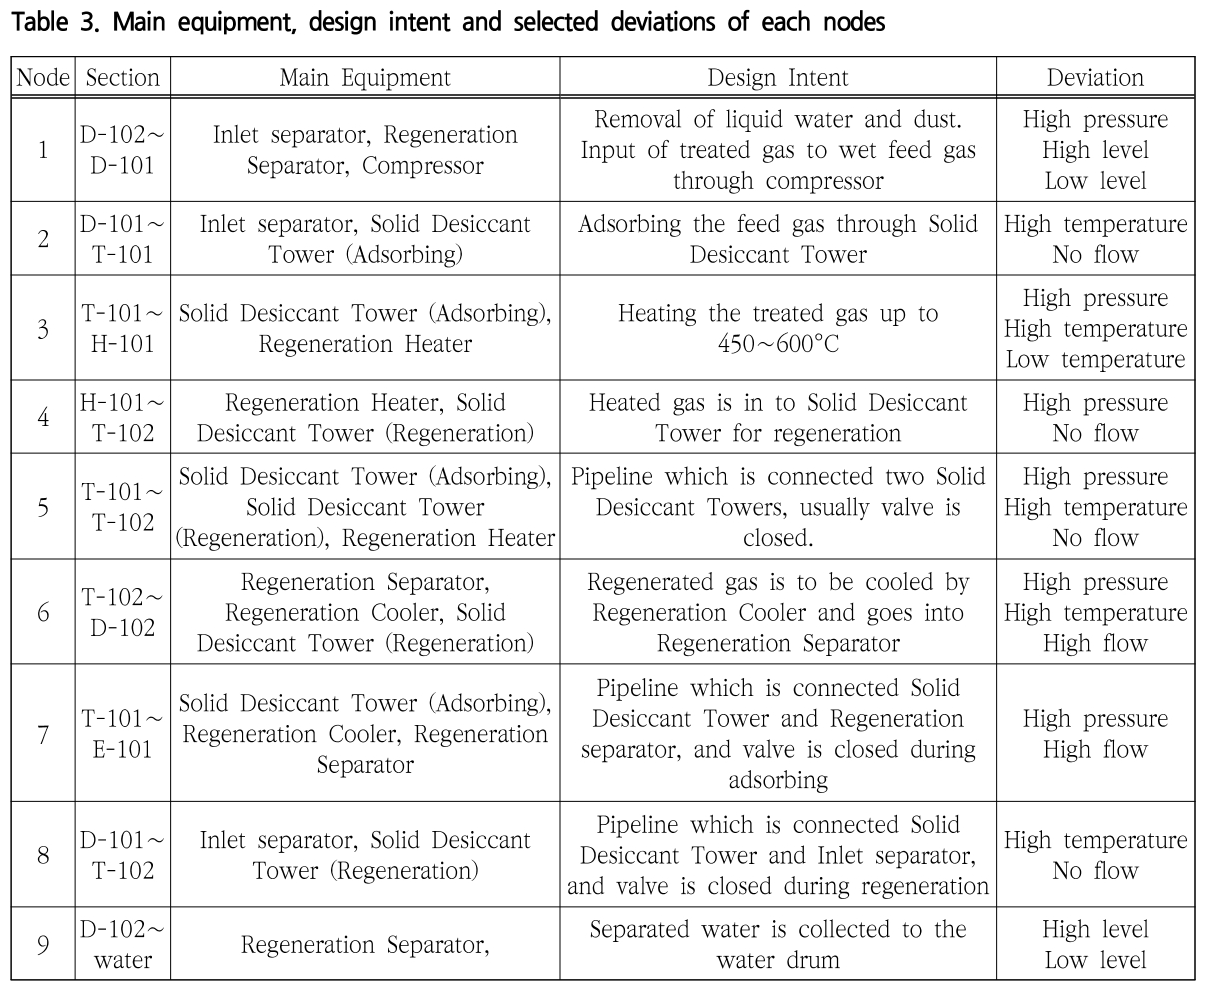 Table 3. Main equipment, design intent and selected deviations of each nodes